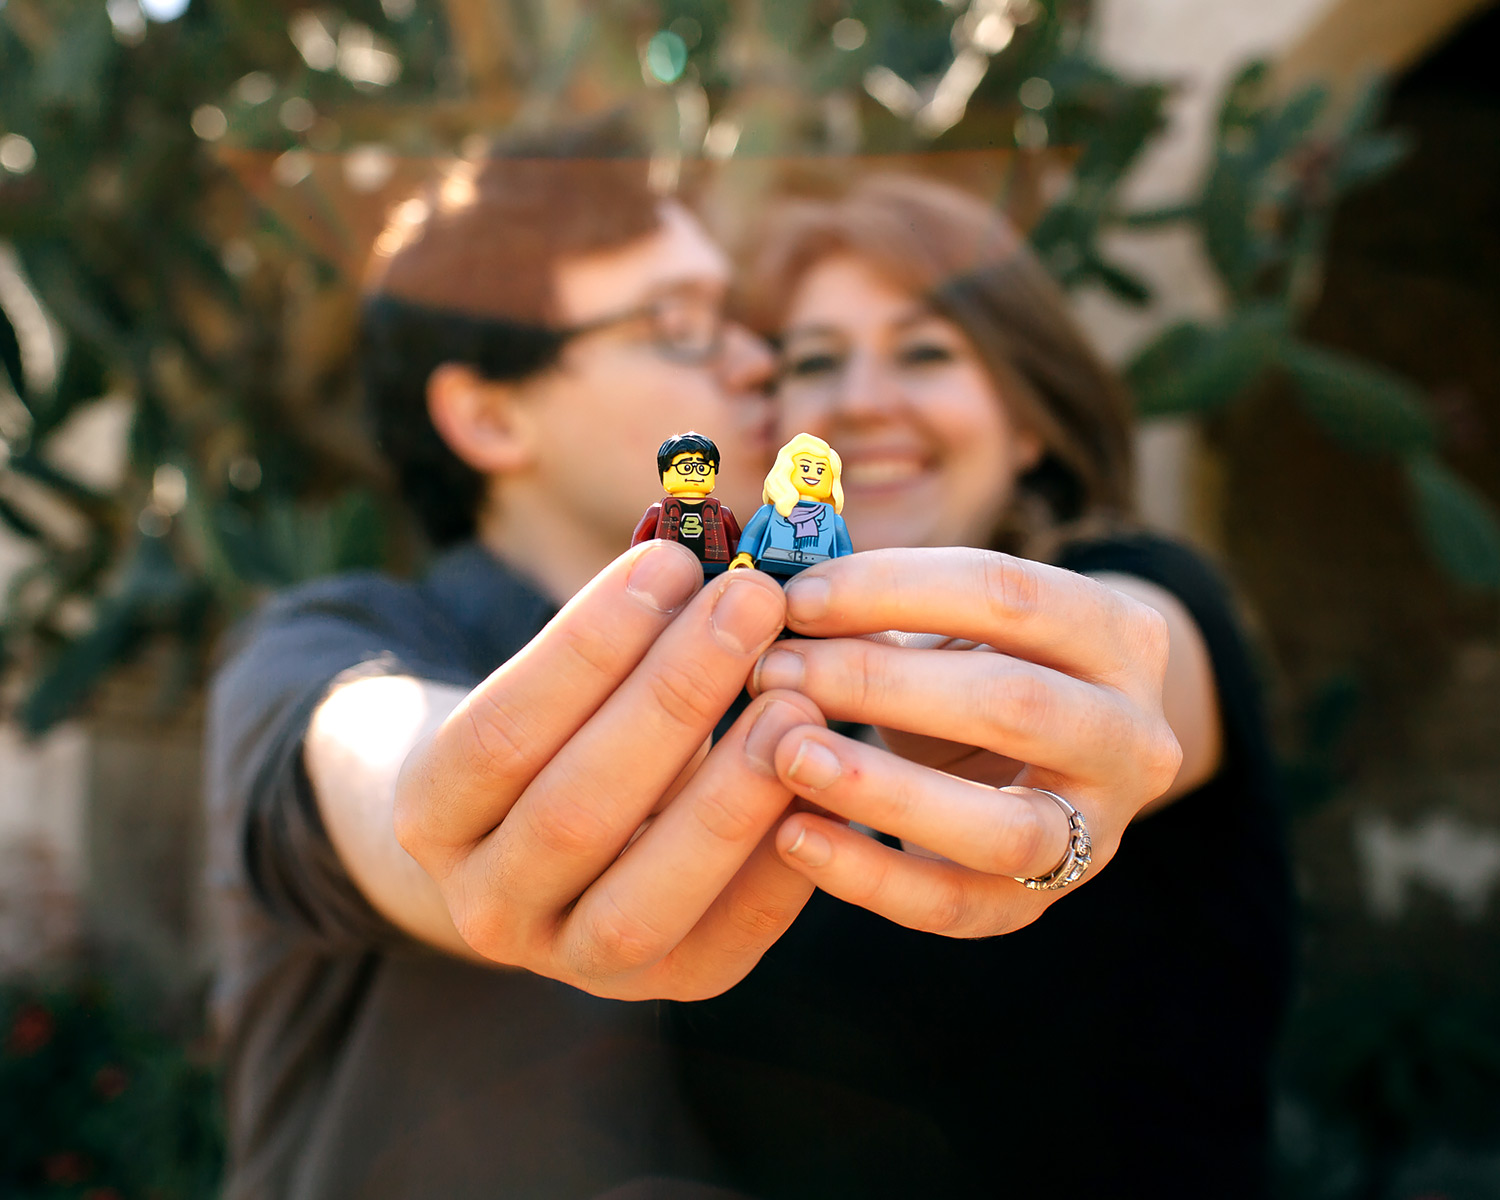 Groom Makes Awesome Lego Love Story Video To Show At Wedding